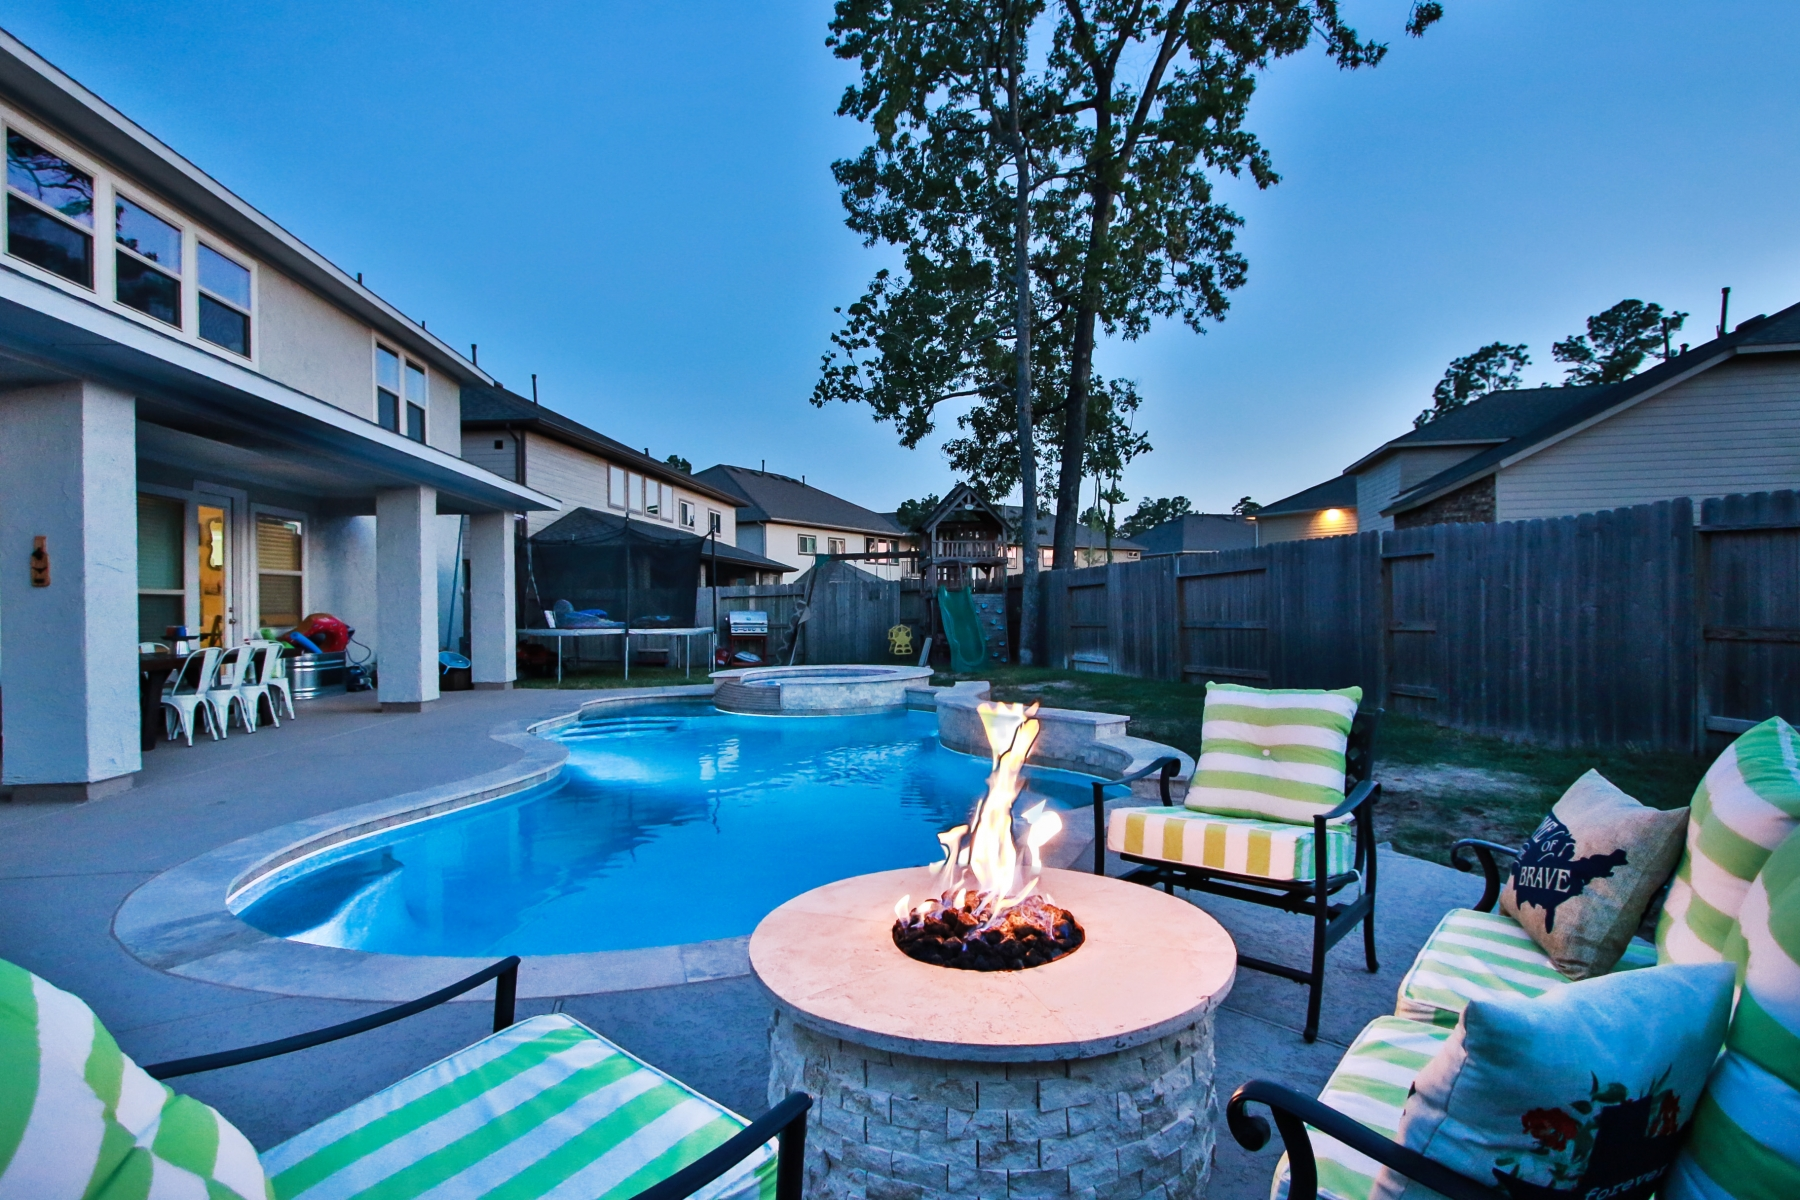 Fire Pit Seating Area Overlooking Freeform Pool at Night